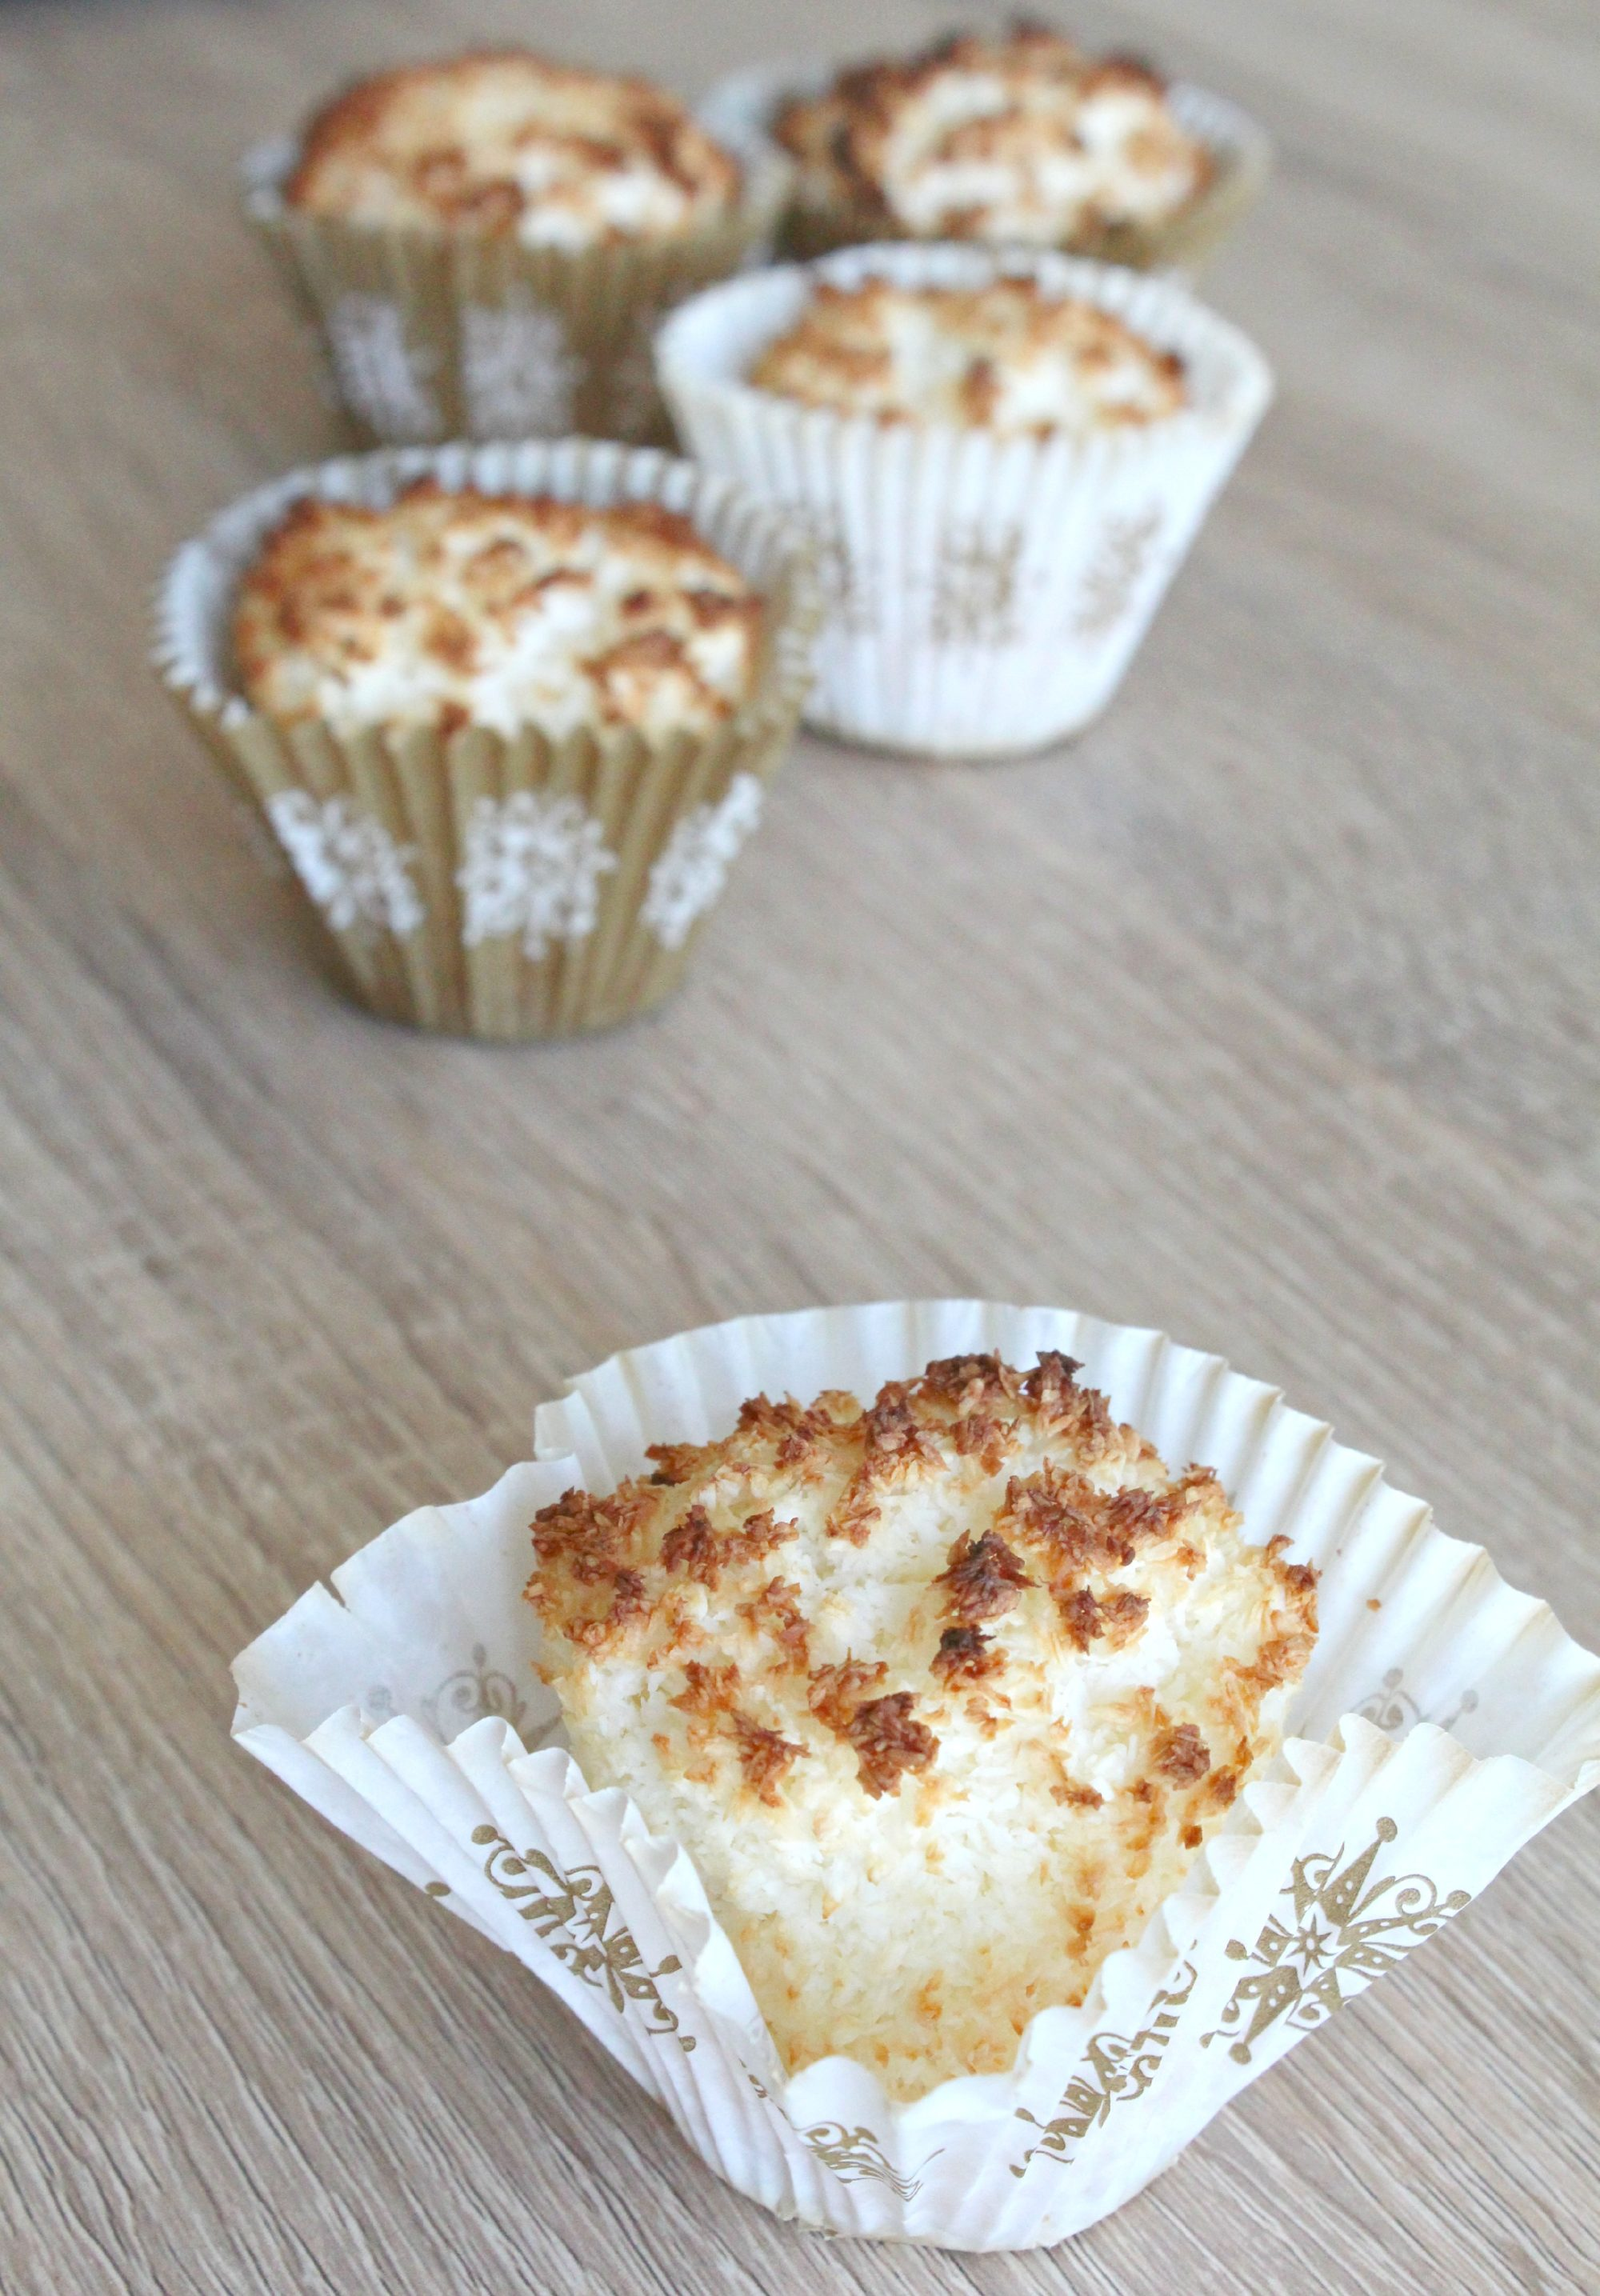 Coconut macaroons cupcakes